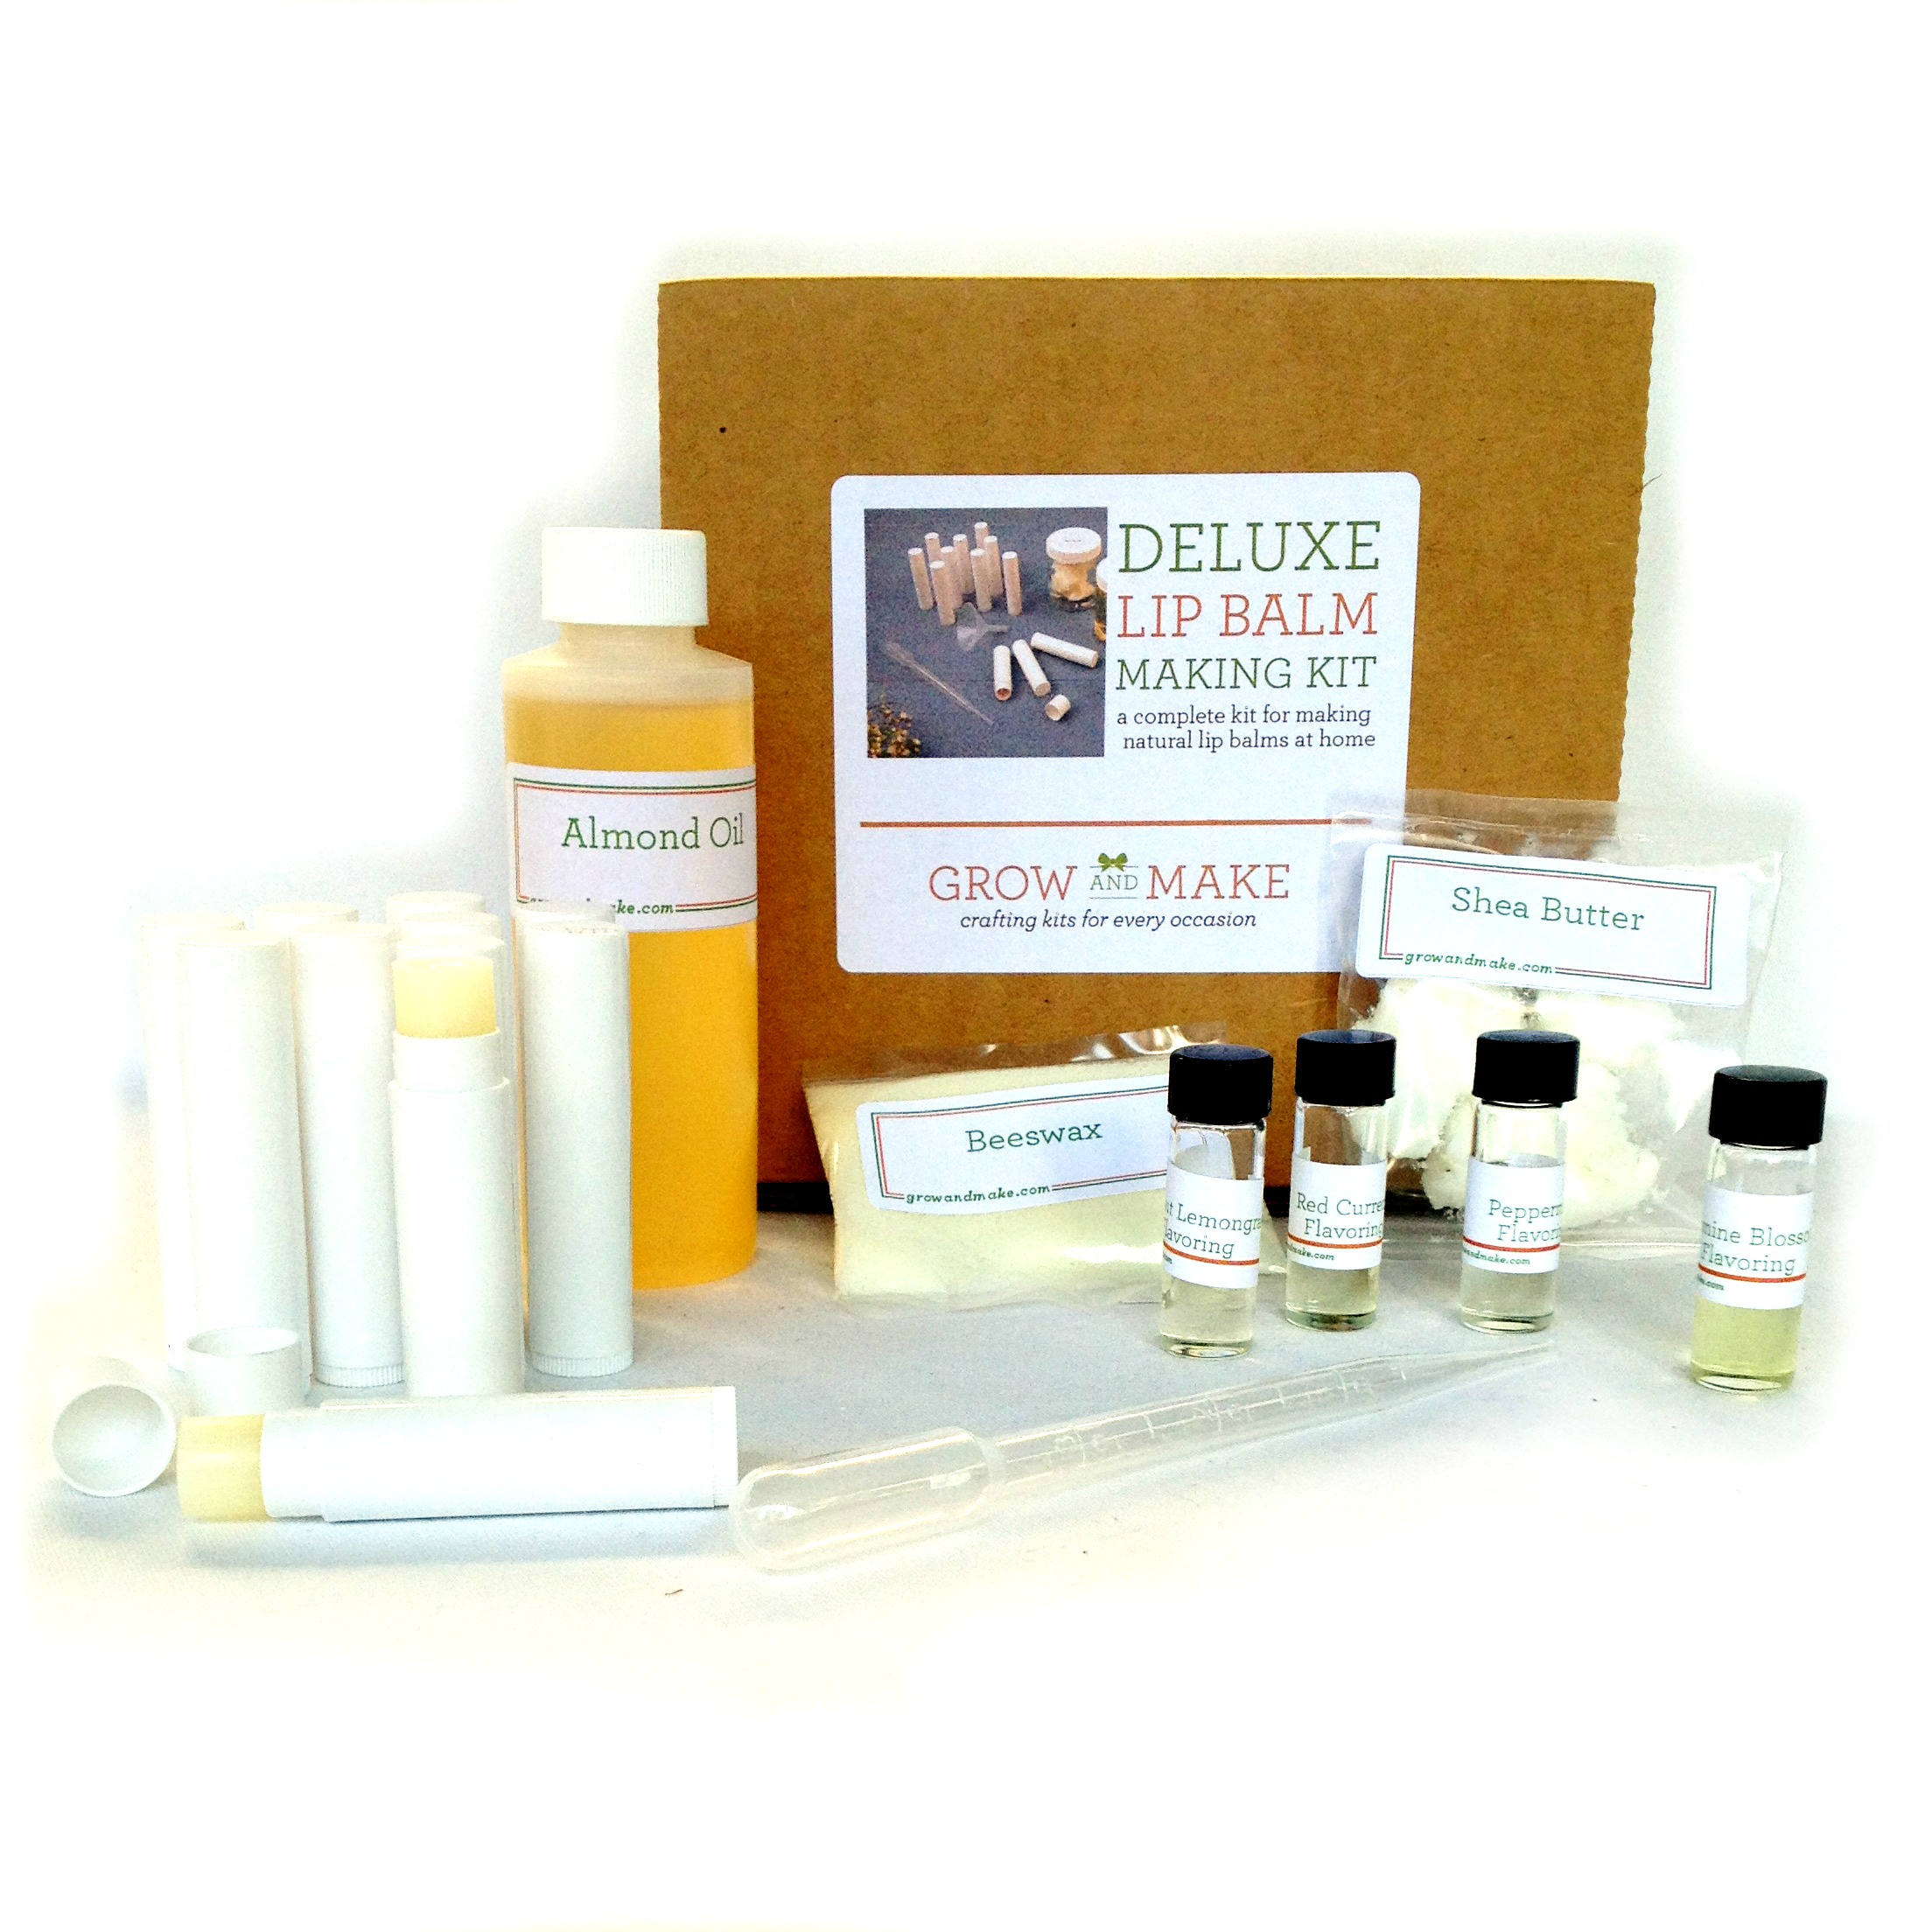 Diy Lip Balm Flavors Popular Flavors Diy Lip Balm Making Kit With Tubes Learn How To Make Home Made Lip Balms